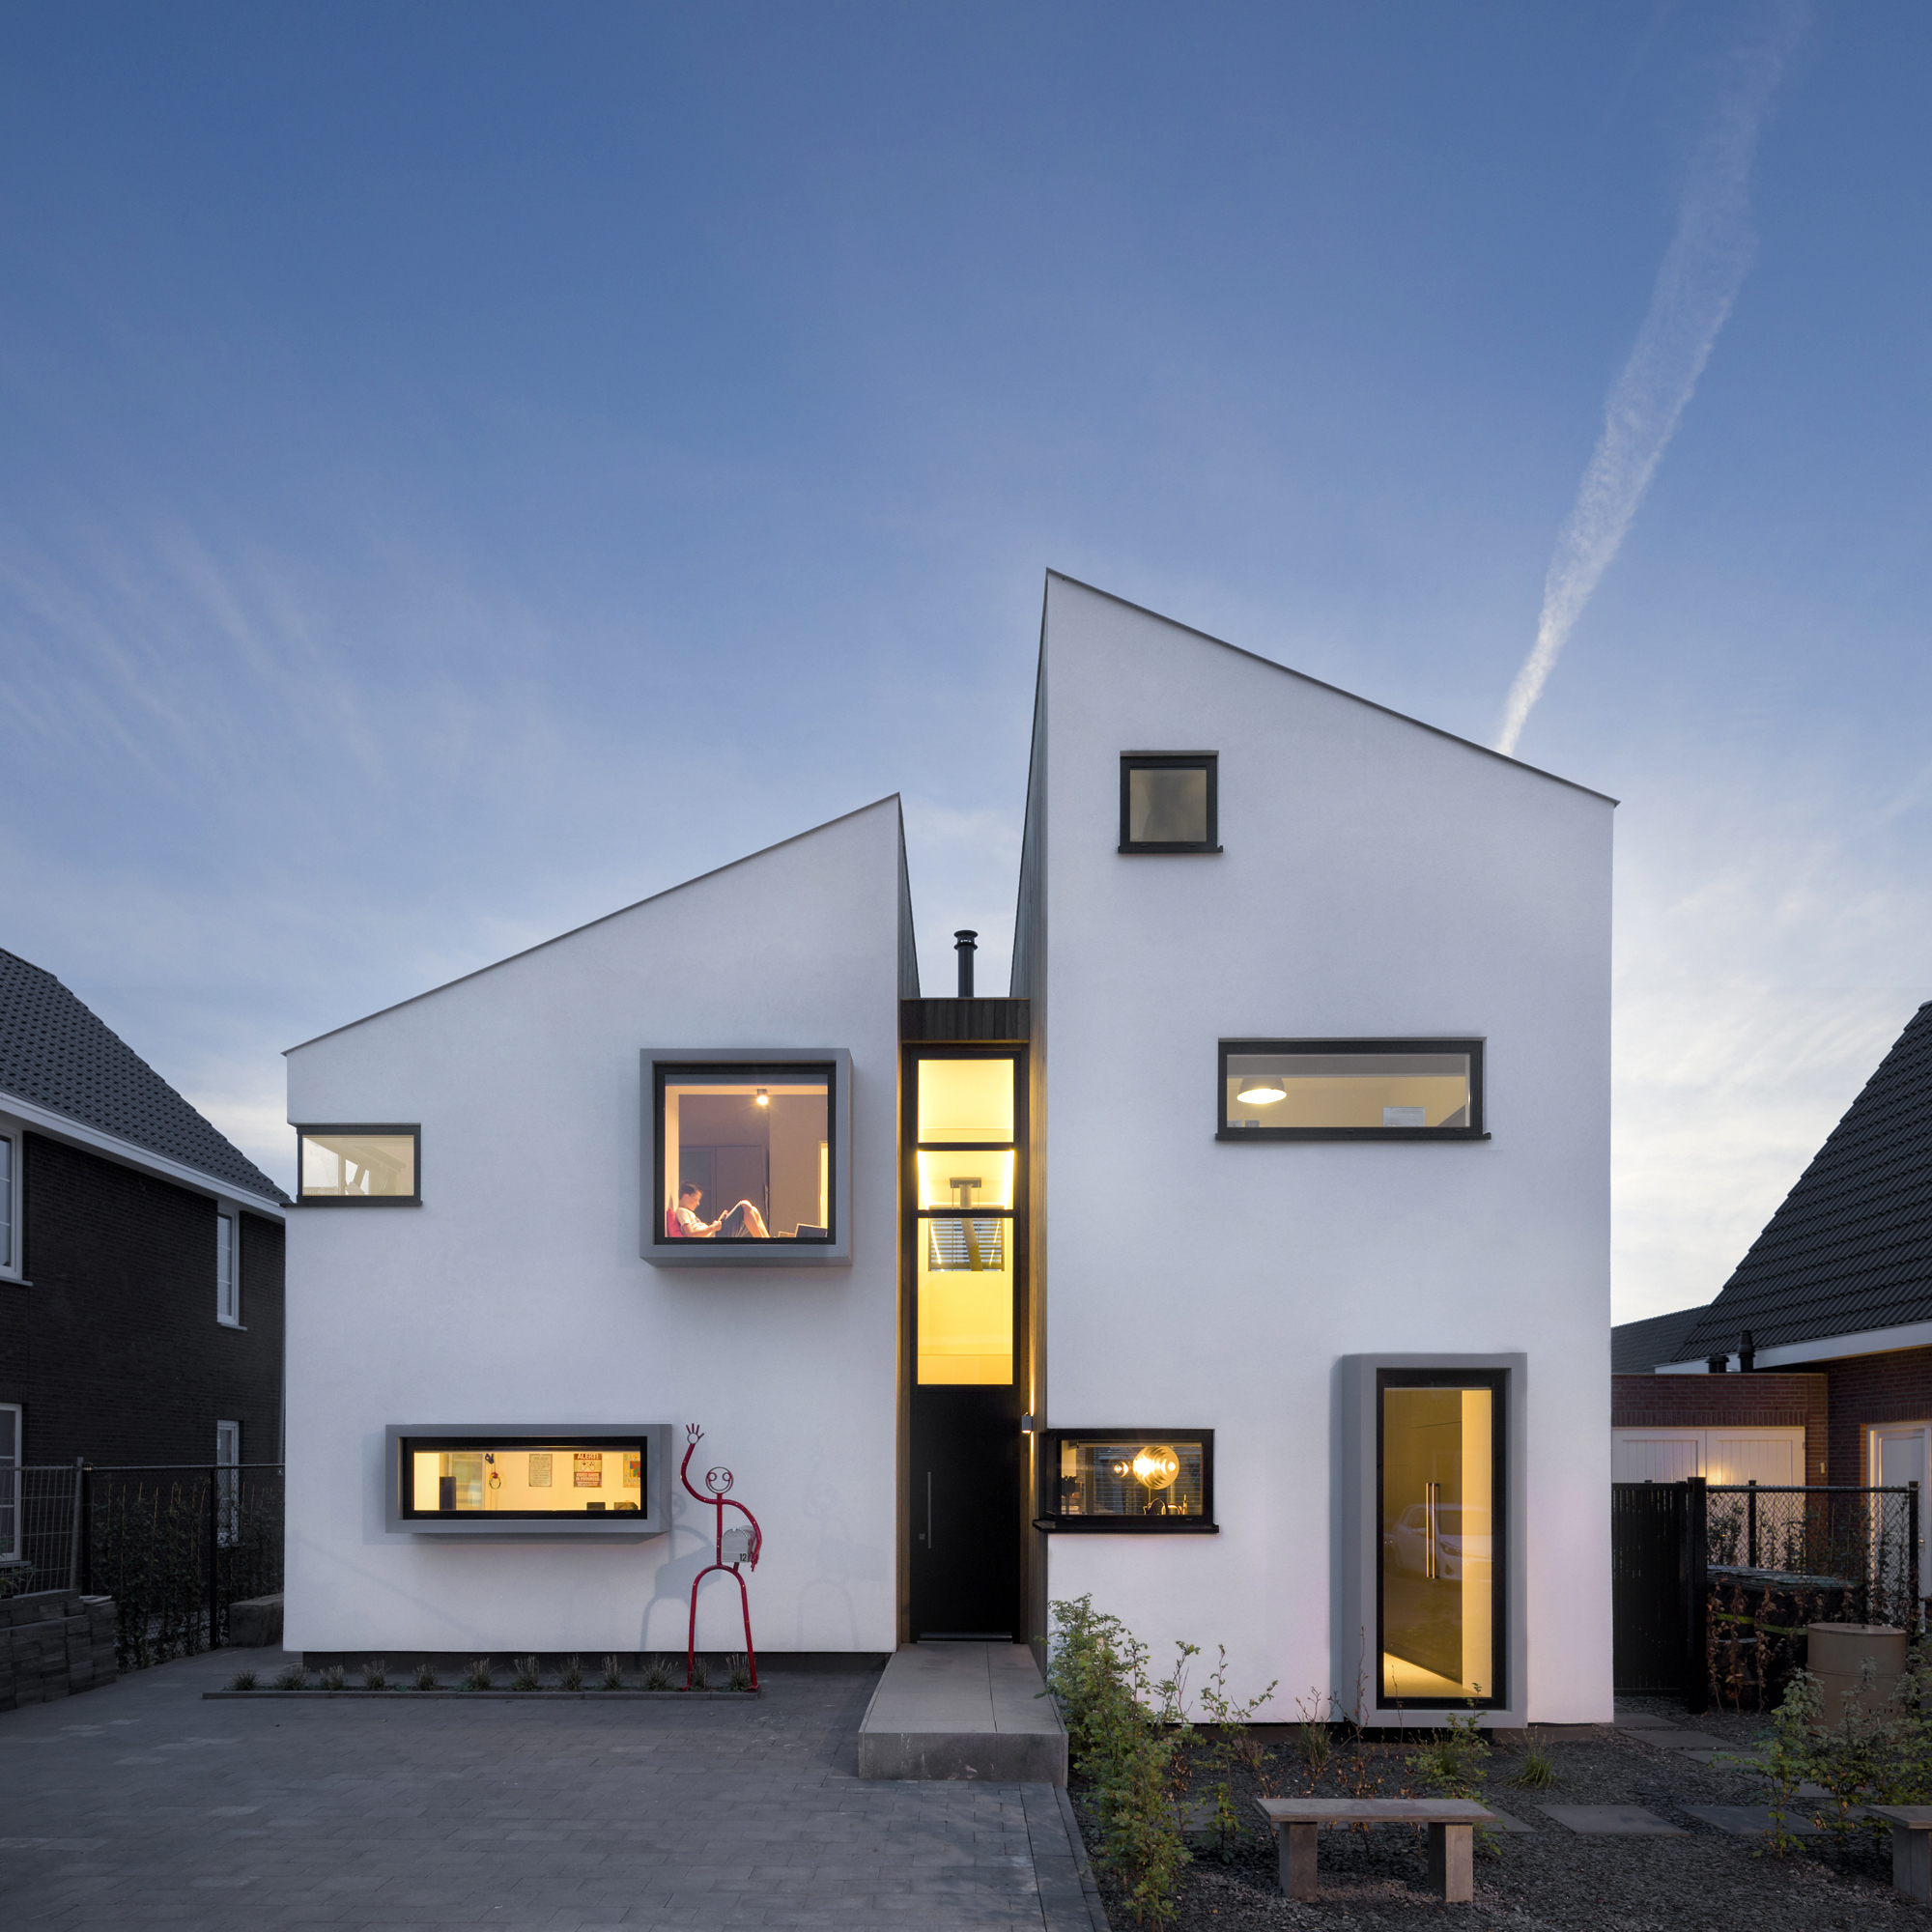 Casa daasdonklaan zone zuid architecten plataforma for Modern house definition